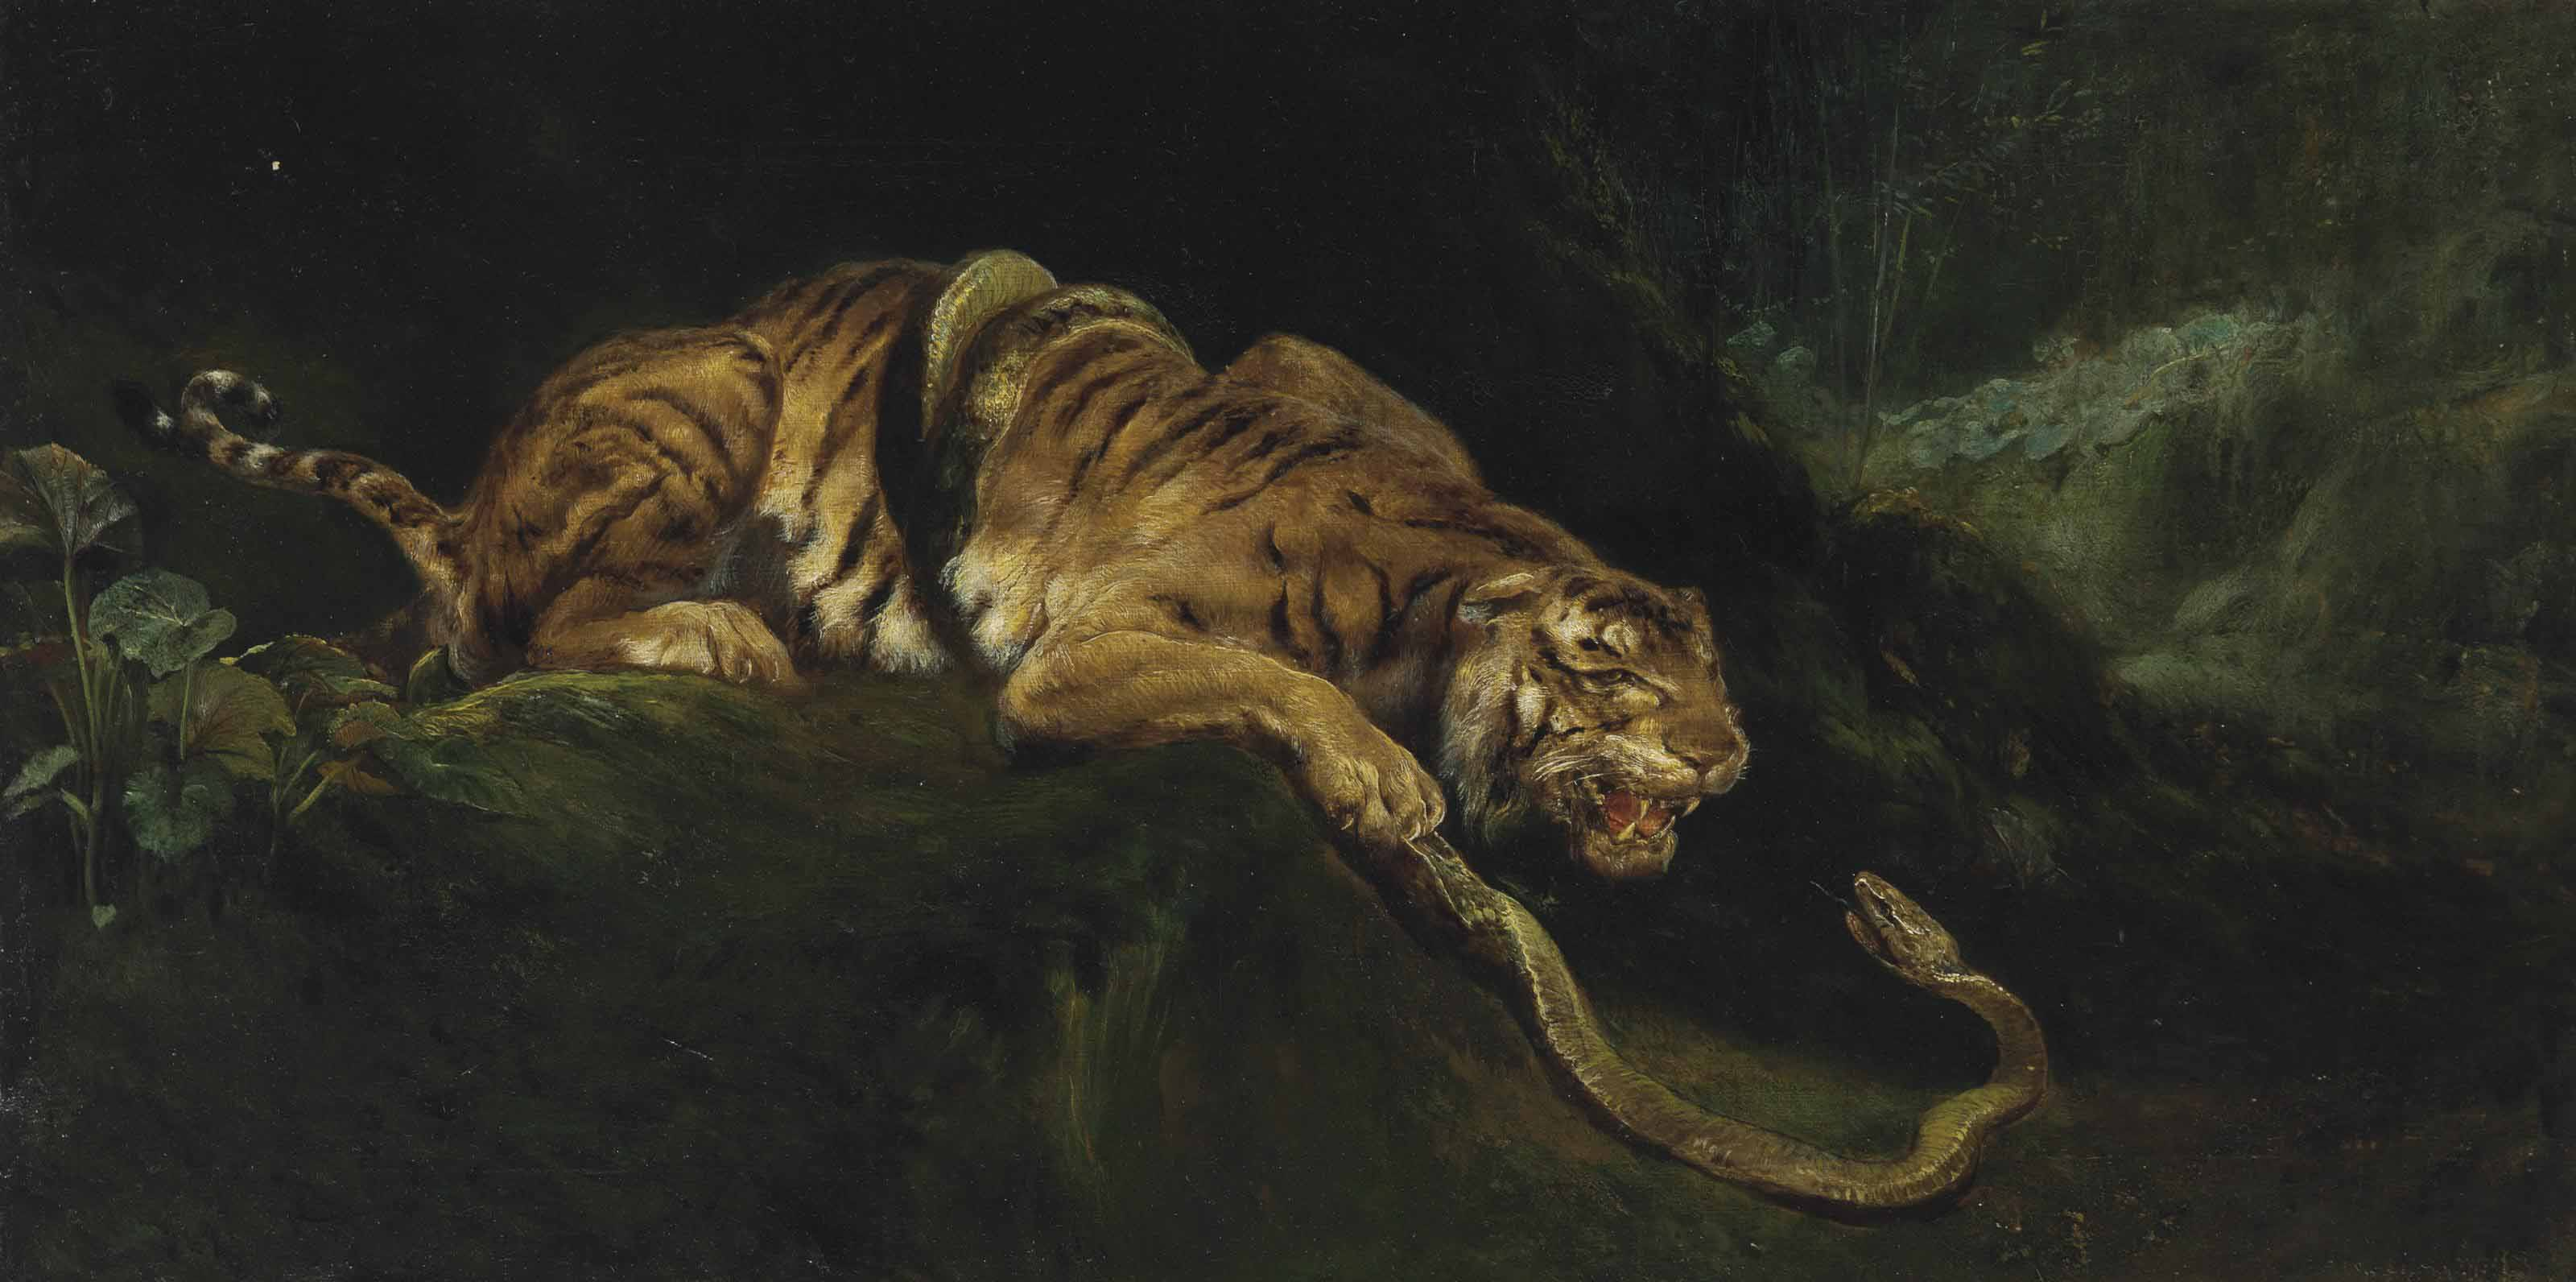 A Tiger Struggling with a Snake